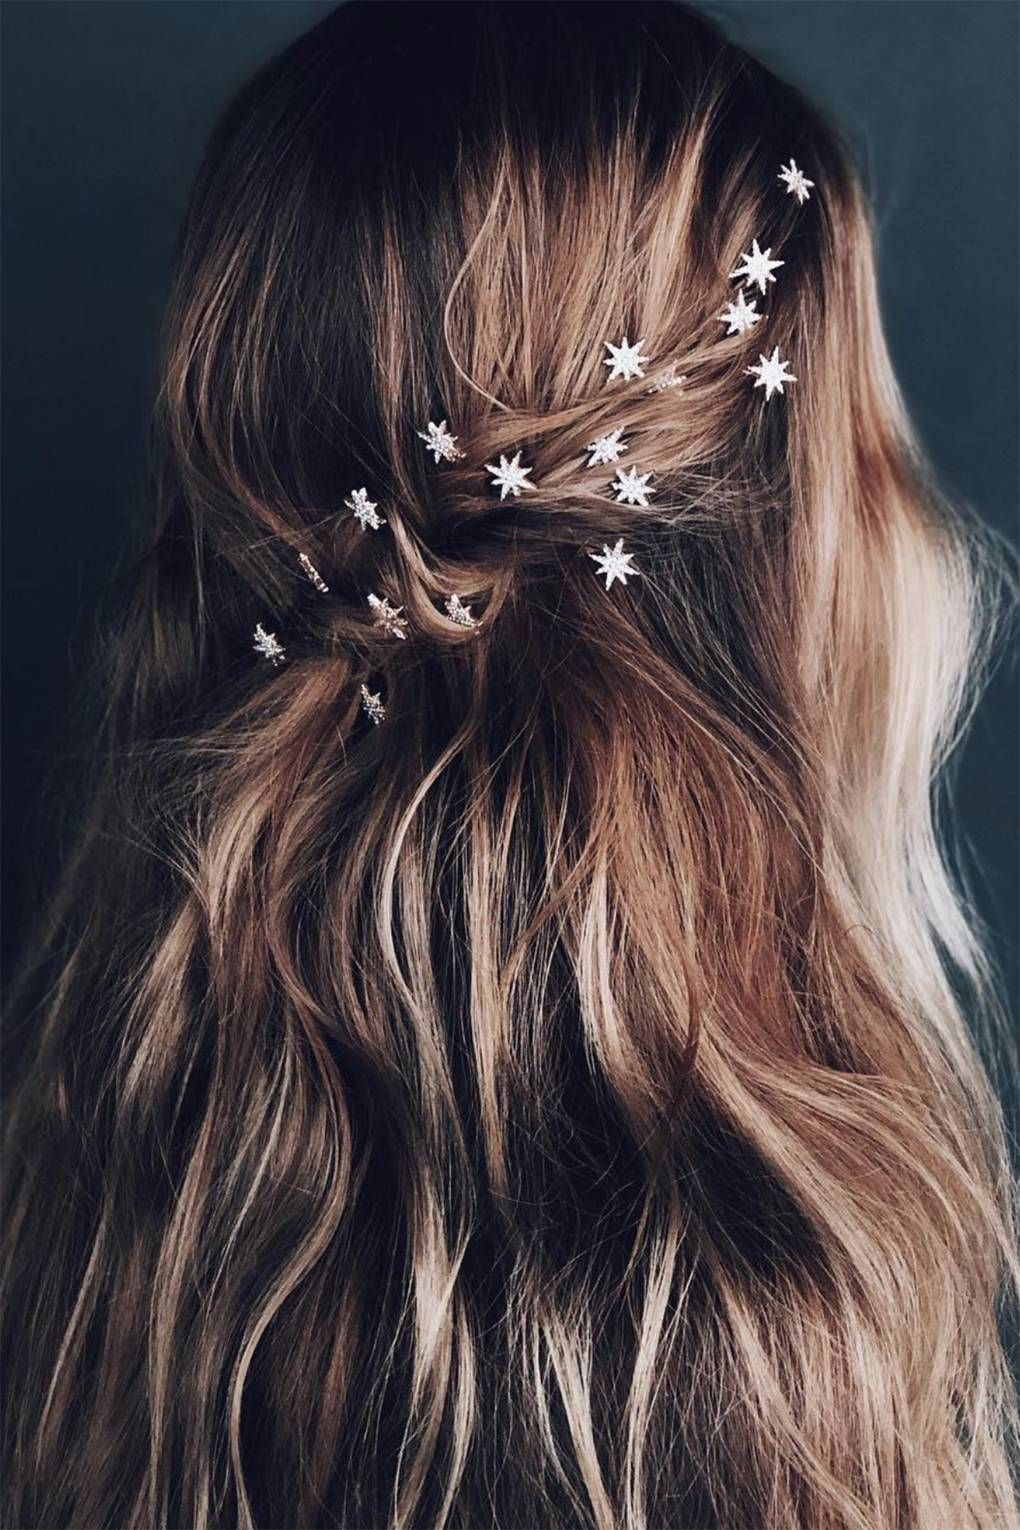 All the winter wedding hair inspiration you need to find a style you'll love